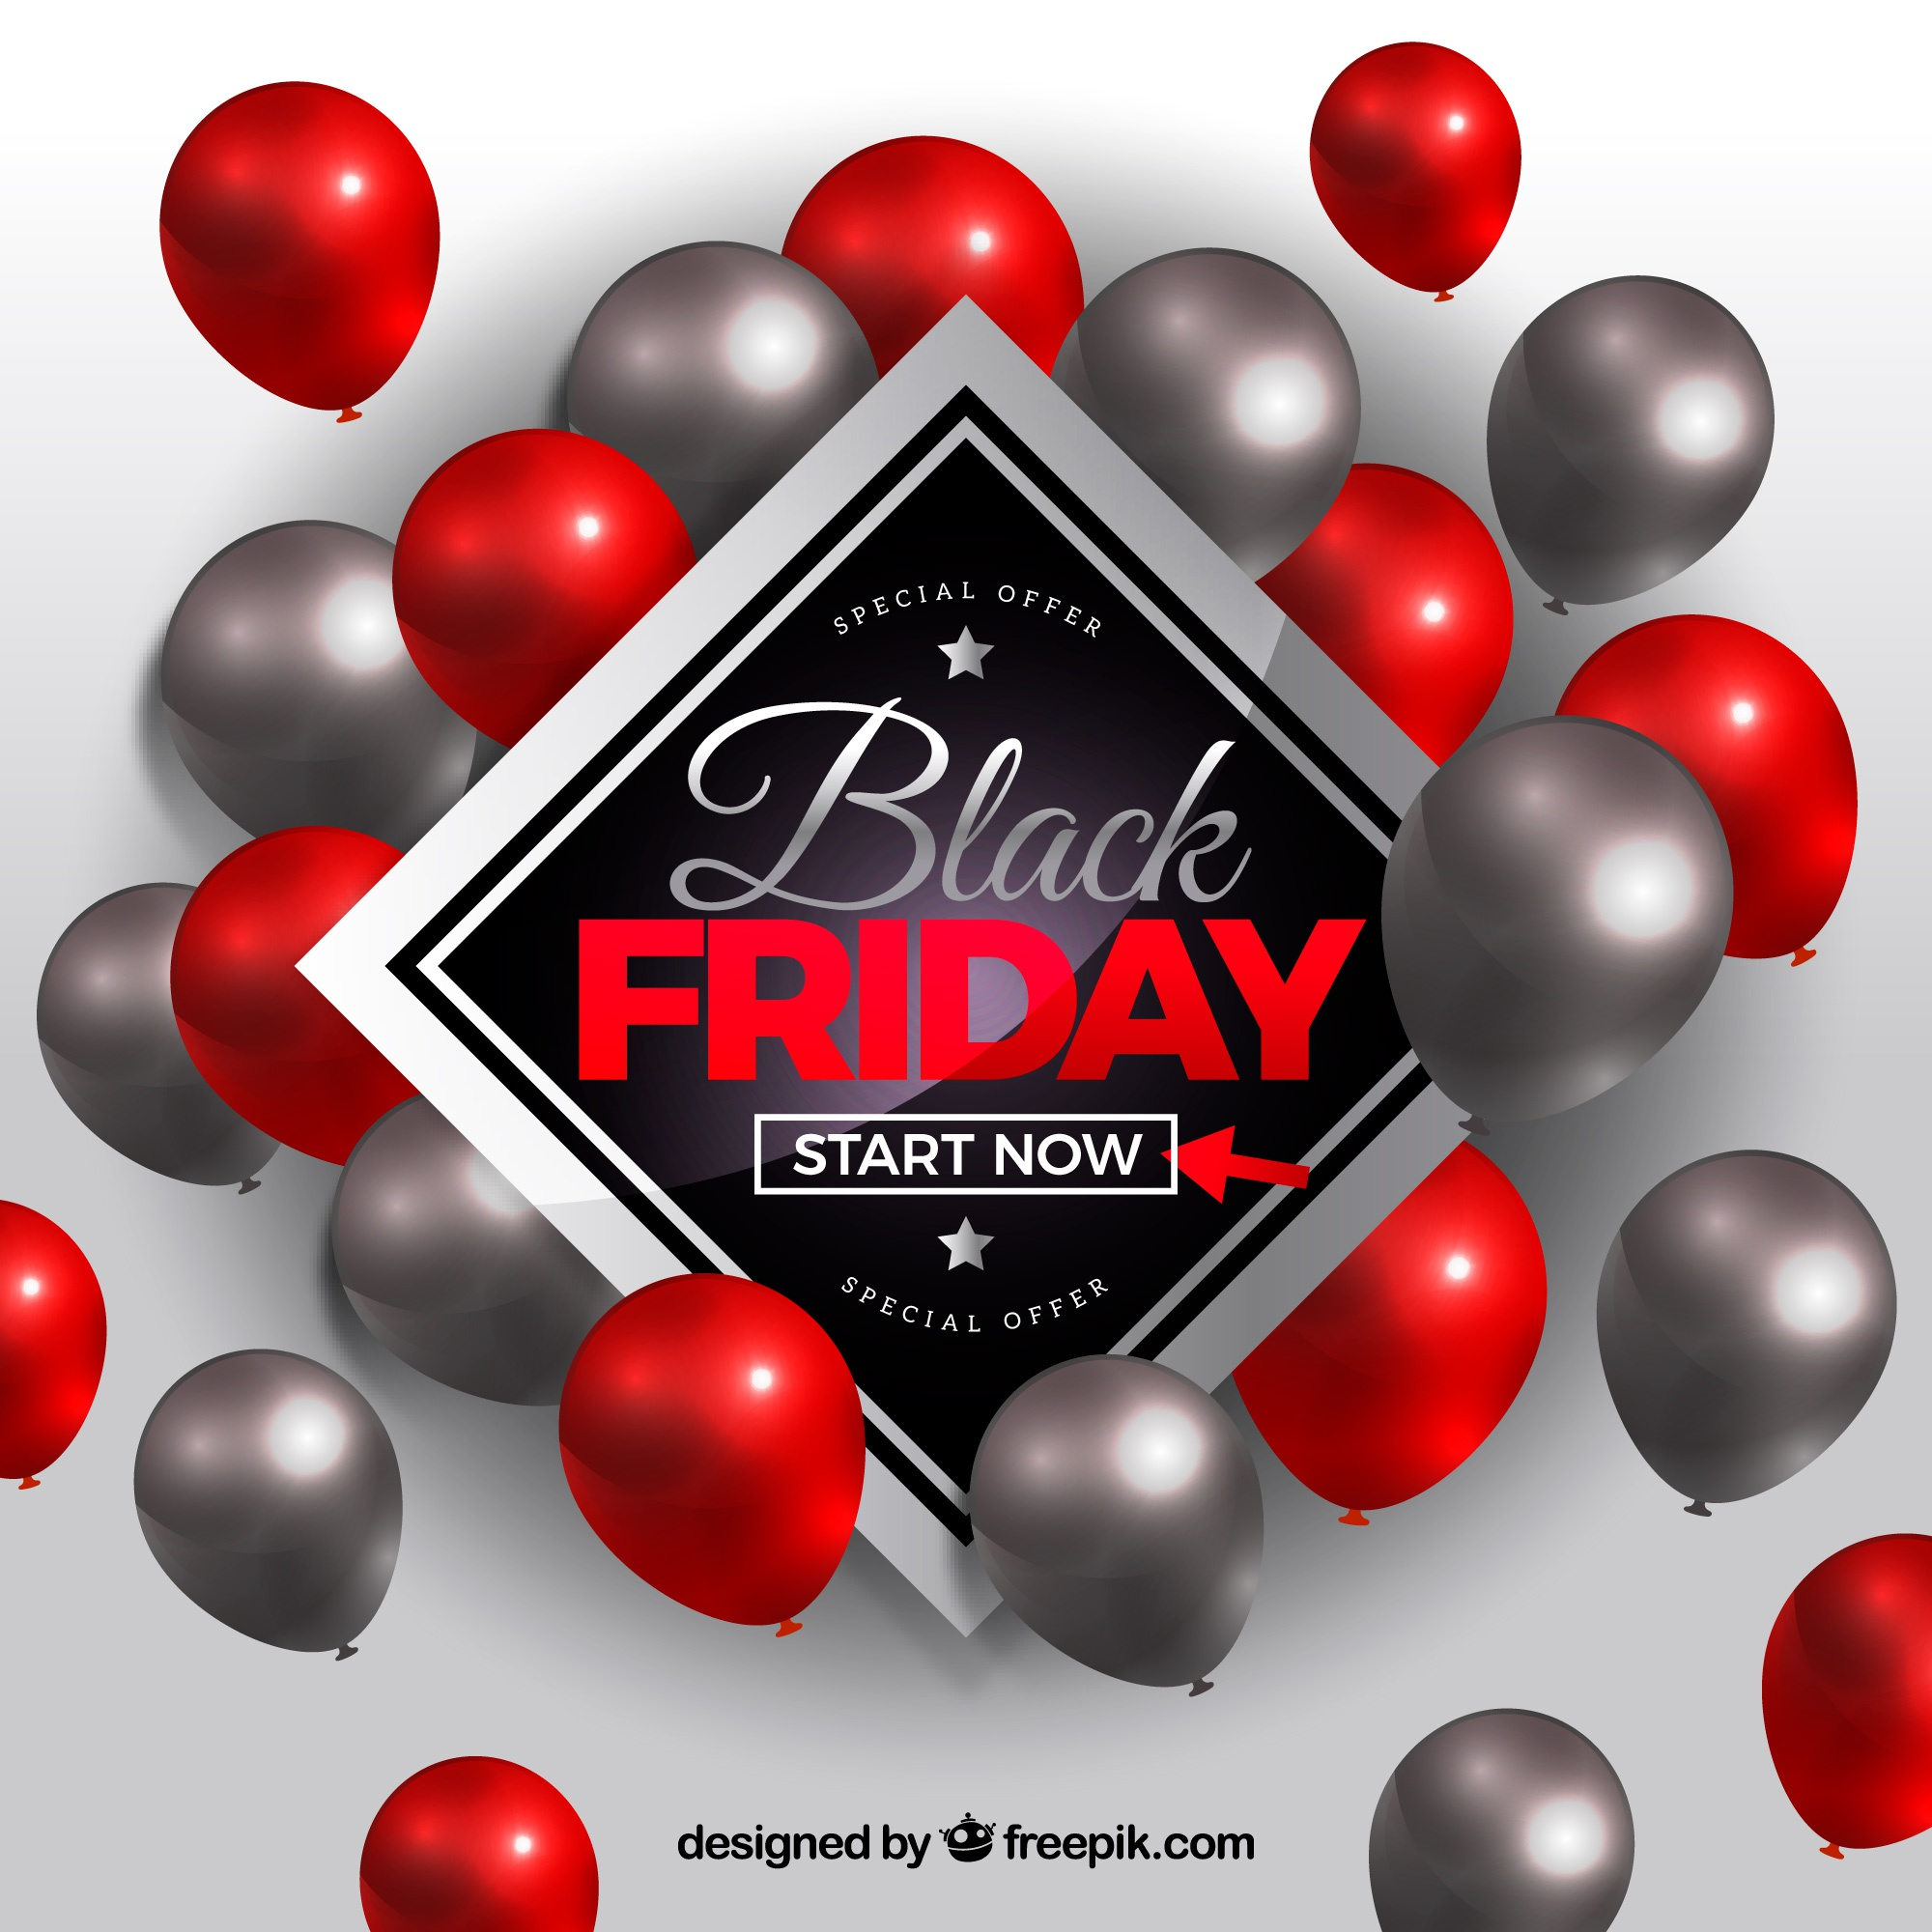 Black friday design with grey and red balloons